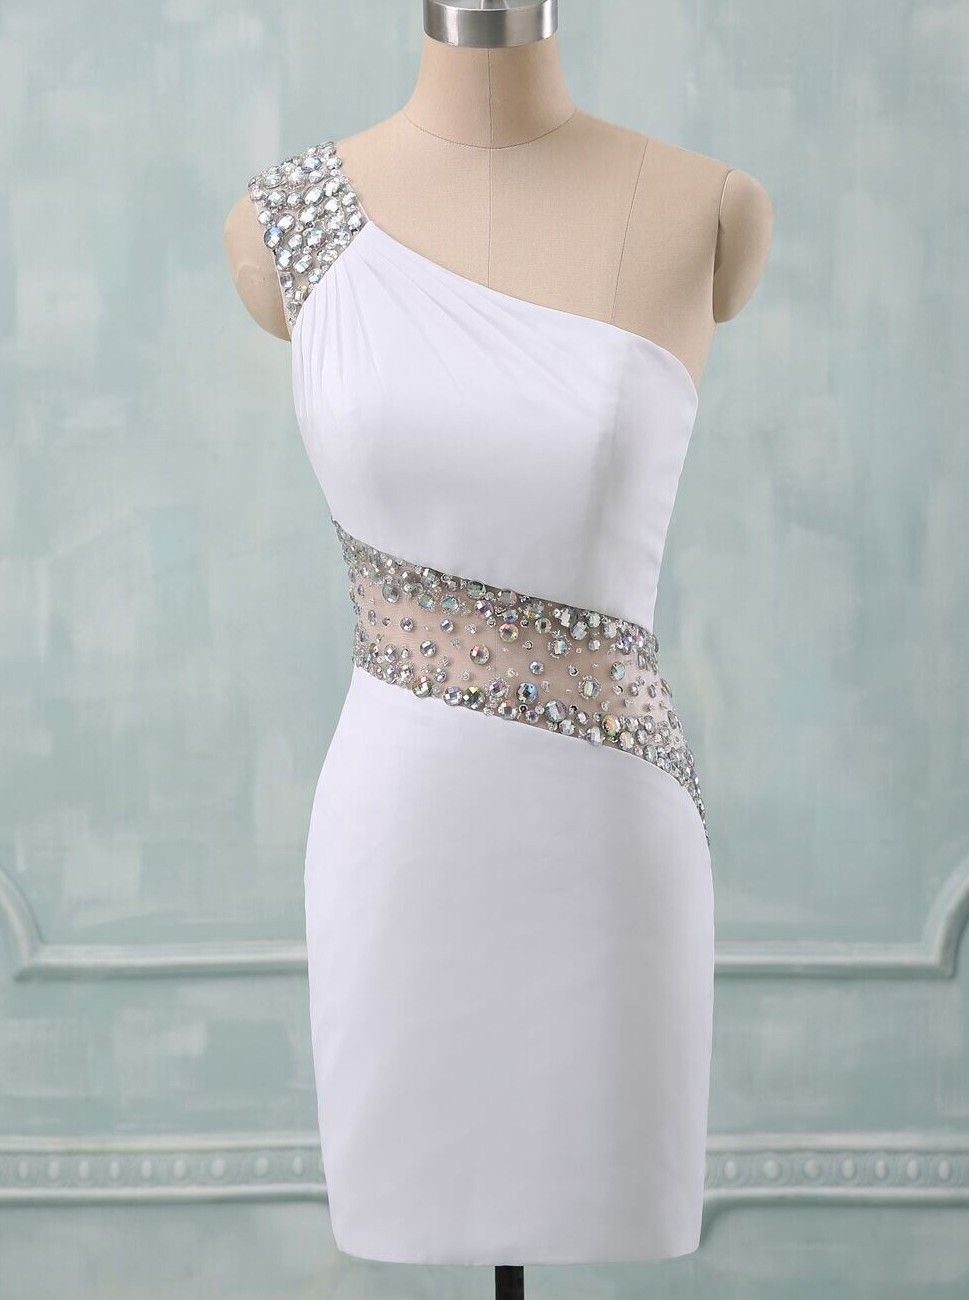 Sheathcolumn oneshoulder short spandex beaded white backless party